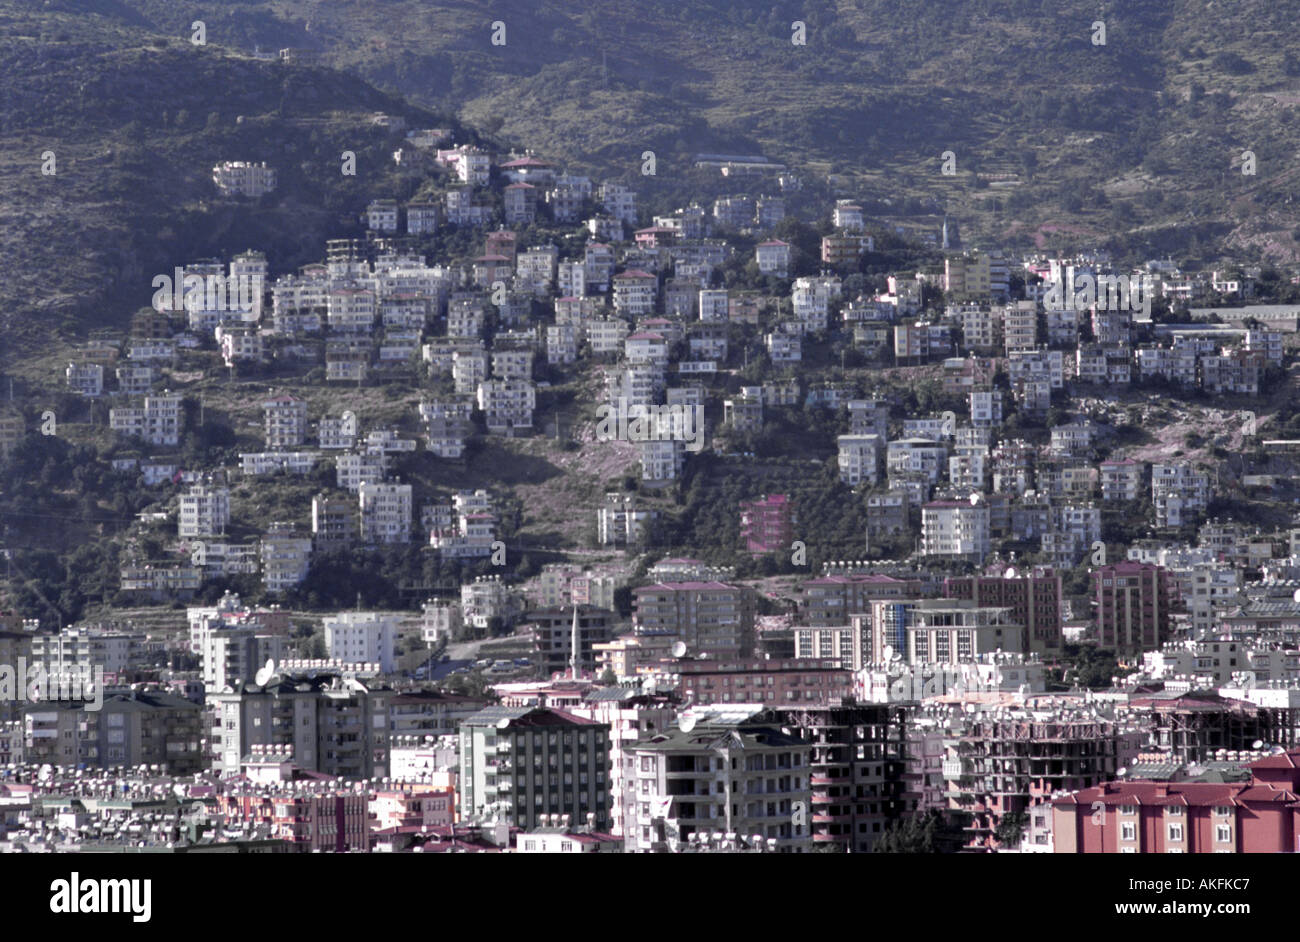 Alanya in Turkey aerial view over the city showing solar panels heating and satellite dishes - Stock Image